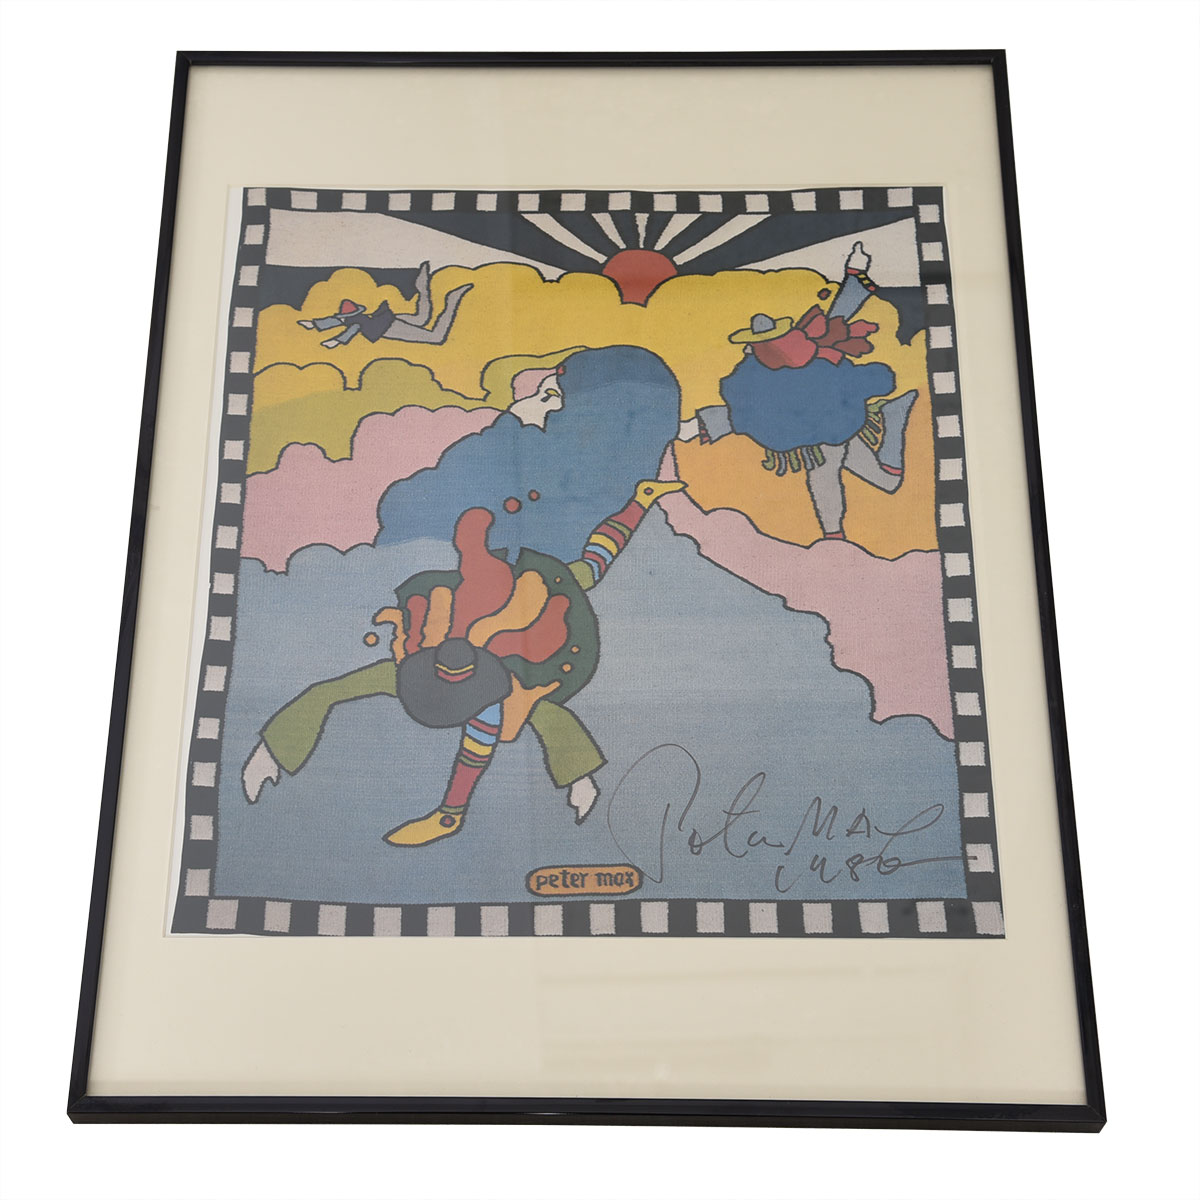 Vintage Photo of a Peter Max Poster, Signed by Peter Max